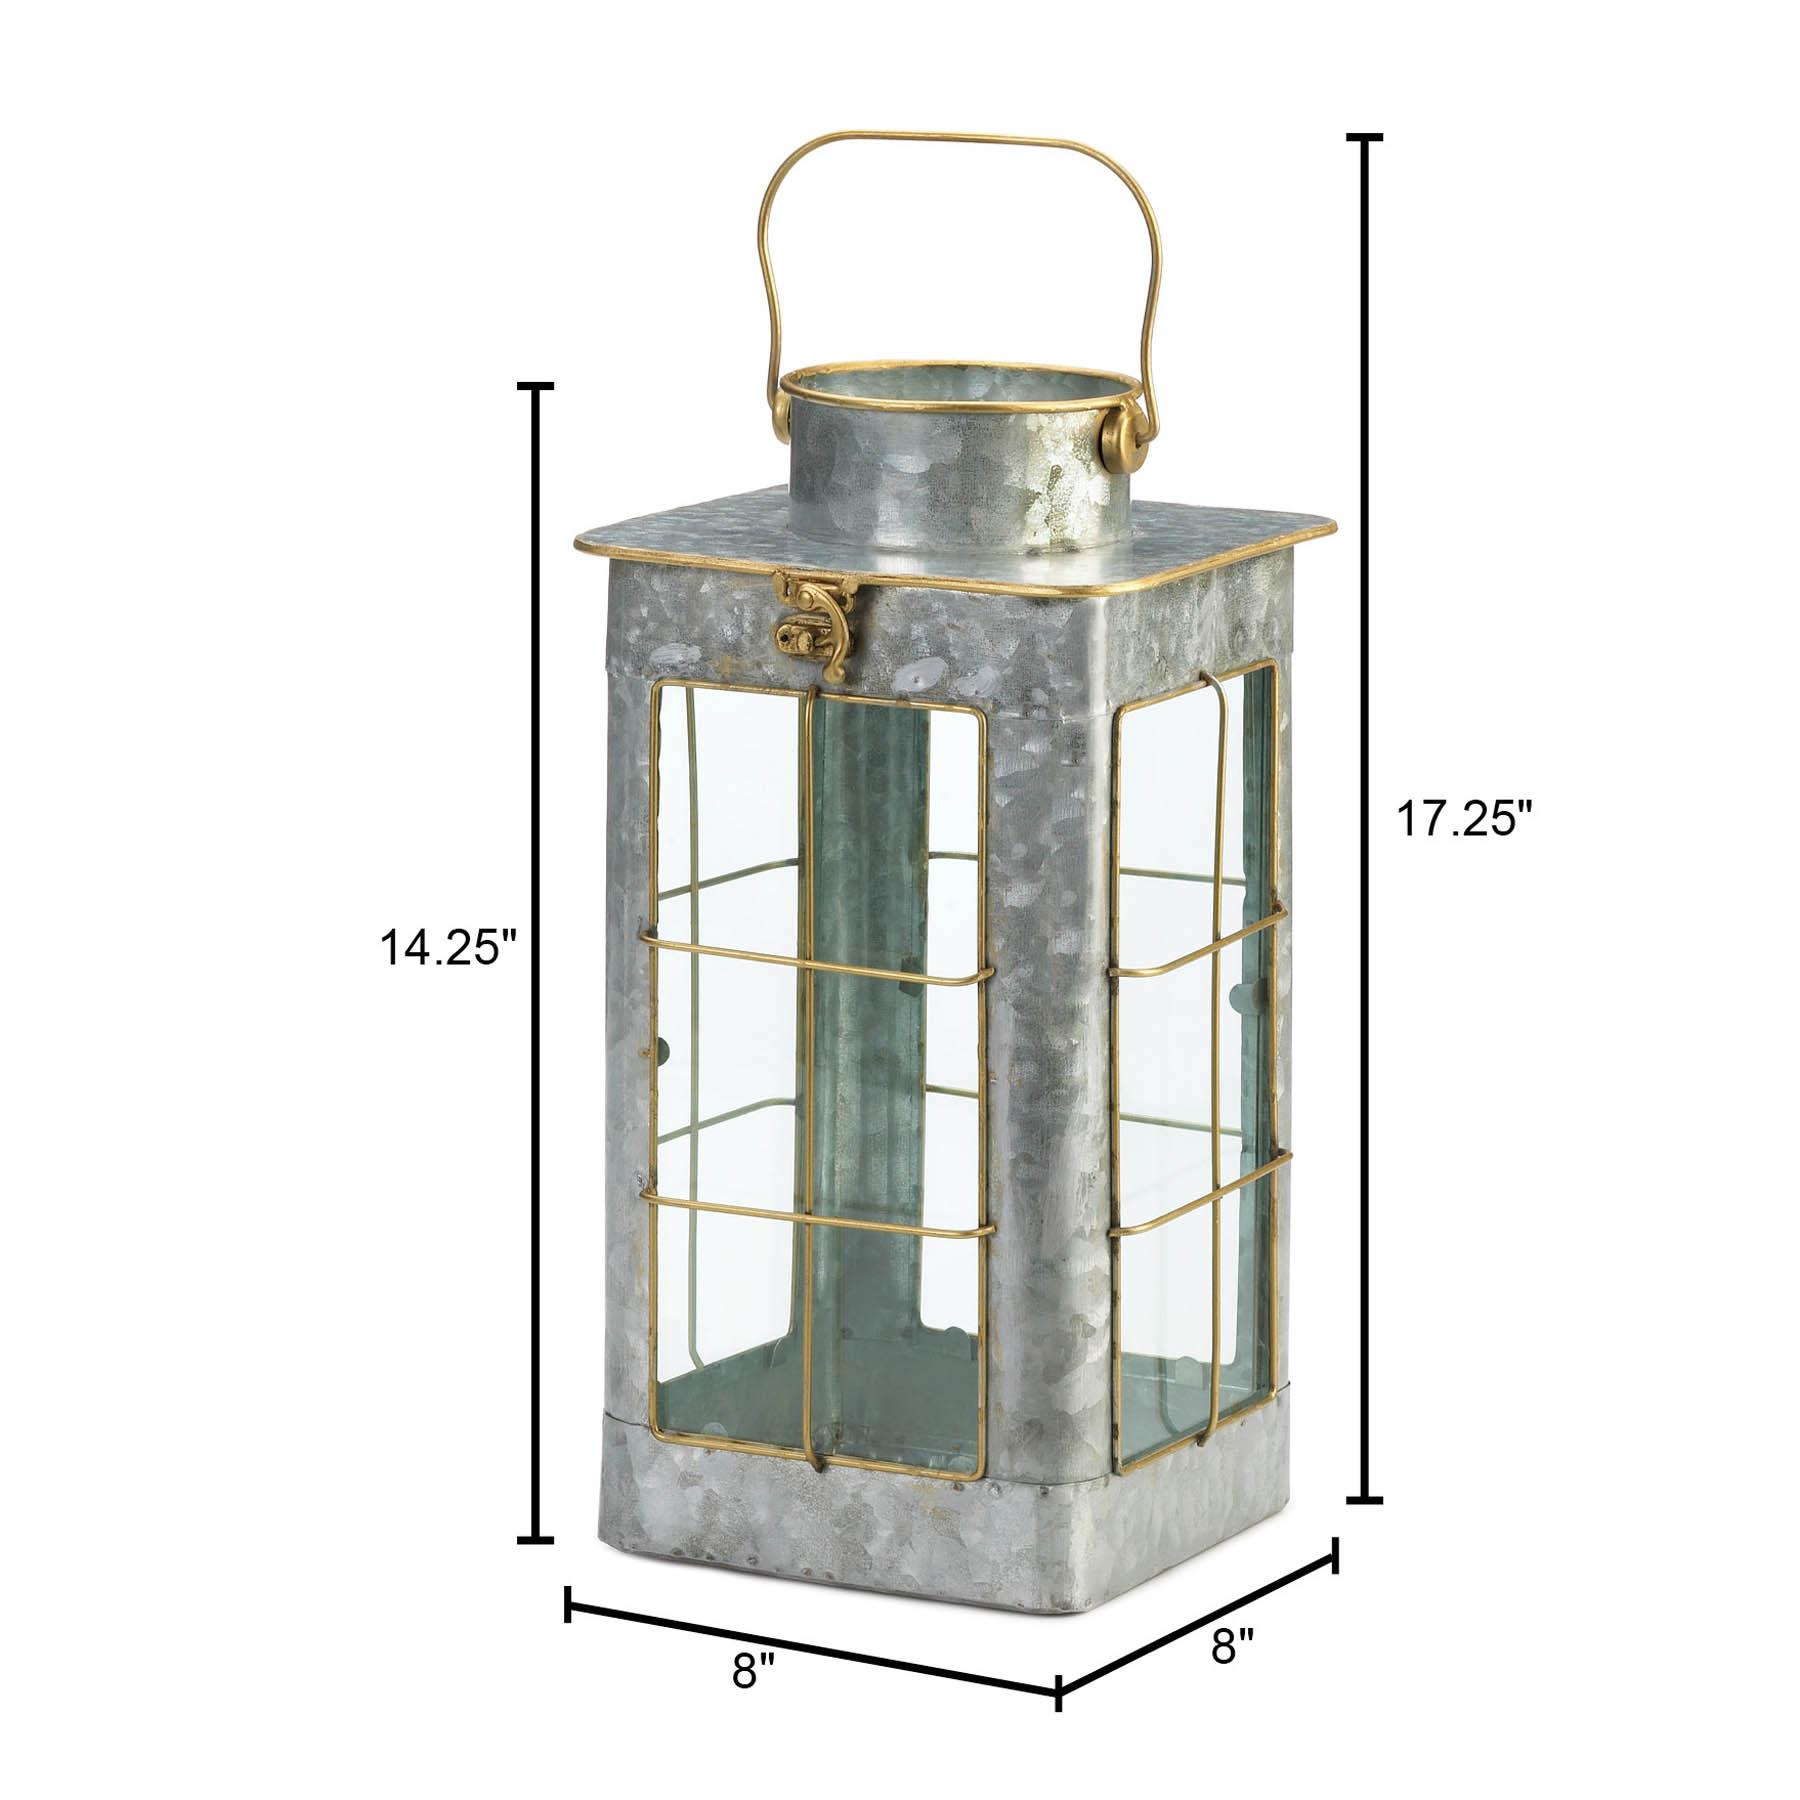 SMALL FARMHOUSE GALVANIZED LANTERN 10018813